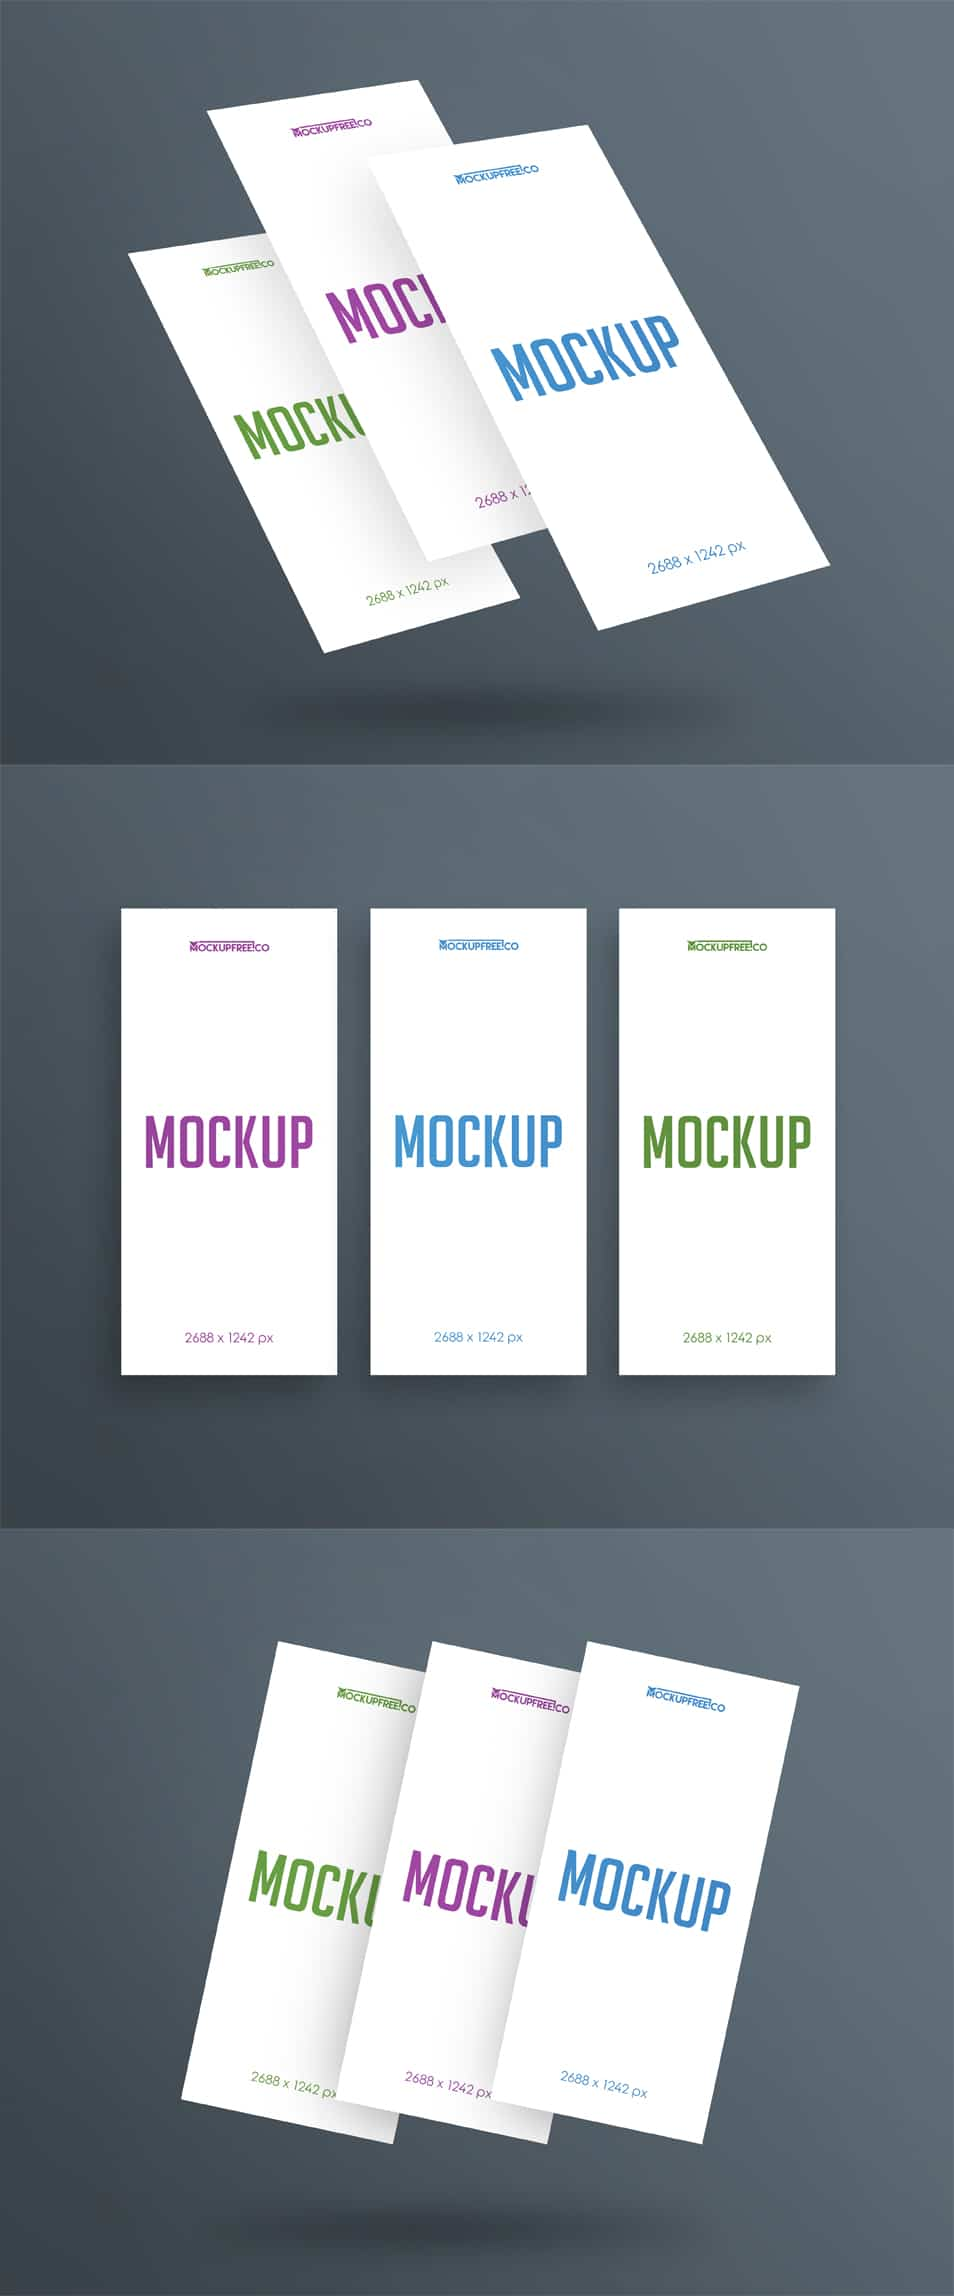 Mobile Display 3 Free PSD Mockups